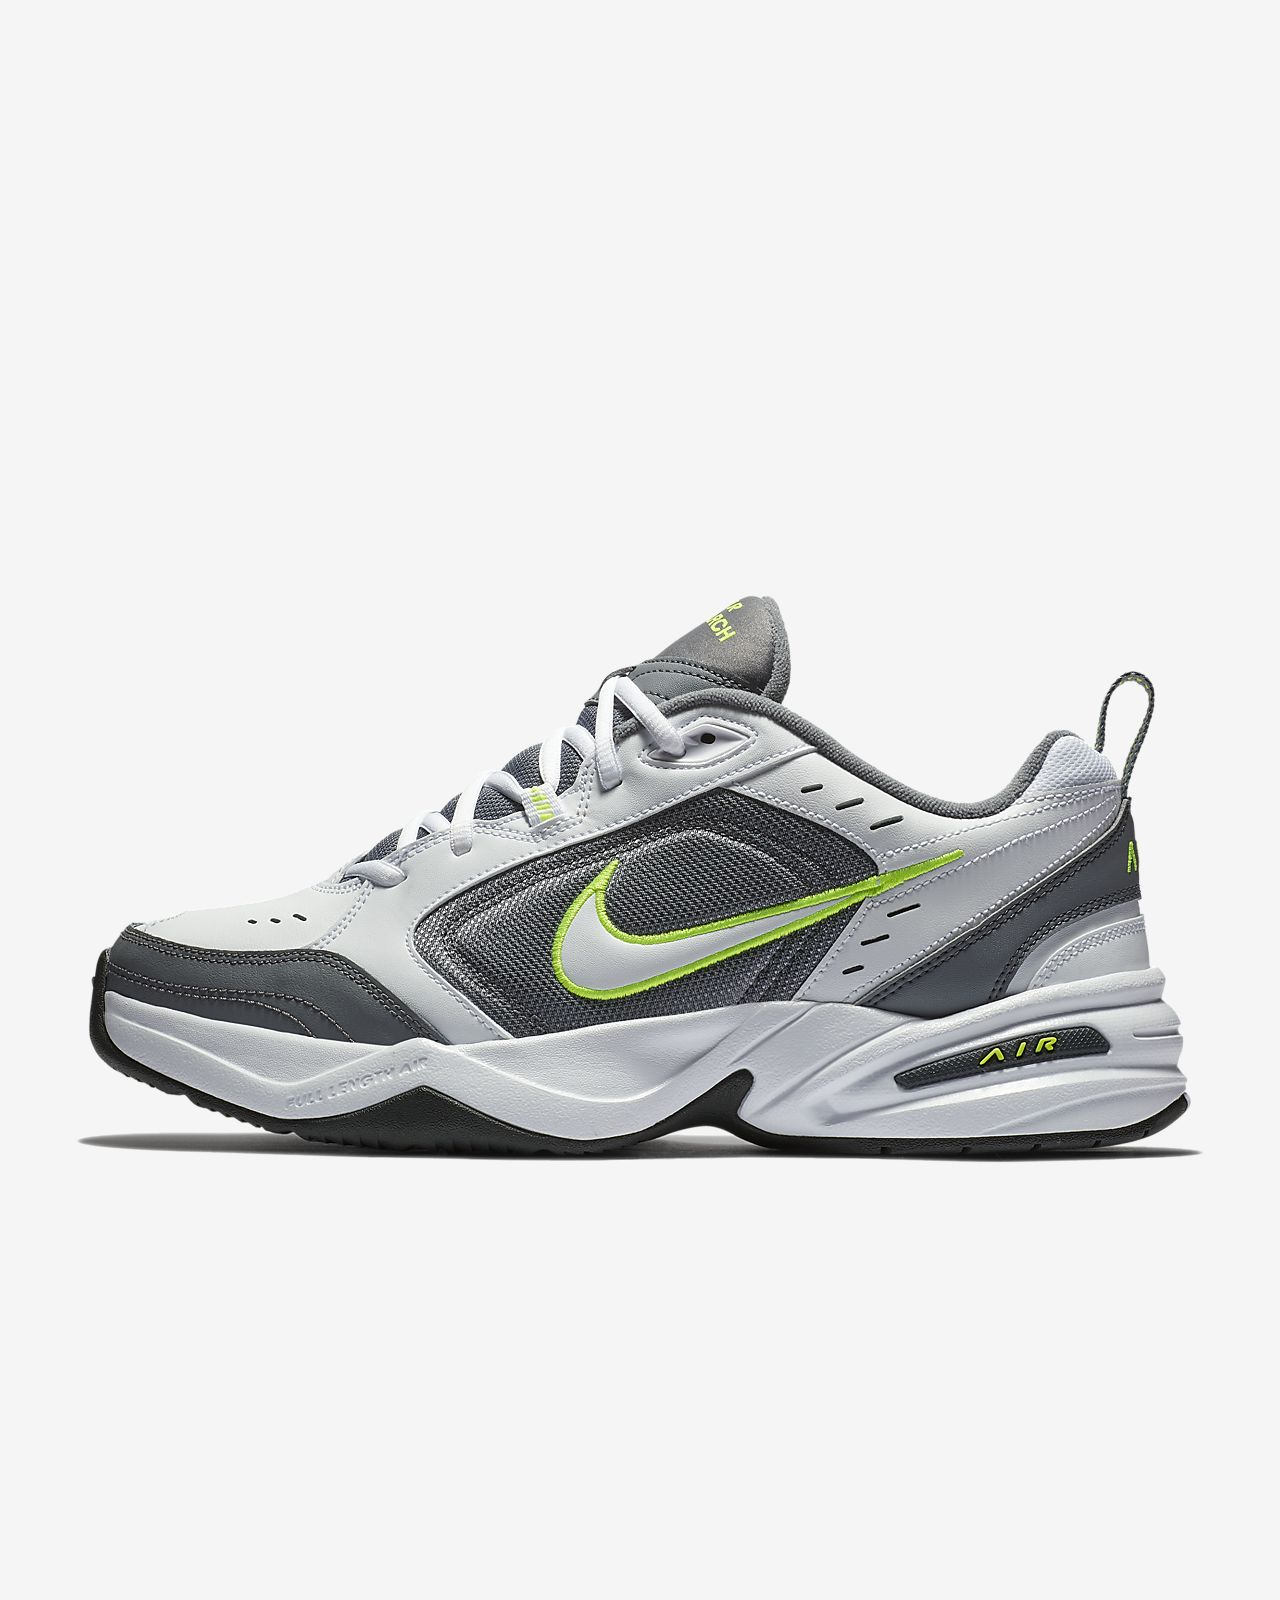 0c3610e2b5d Nike Air Monarch IV Lifestyle Gym Shoe. Nike.com